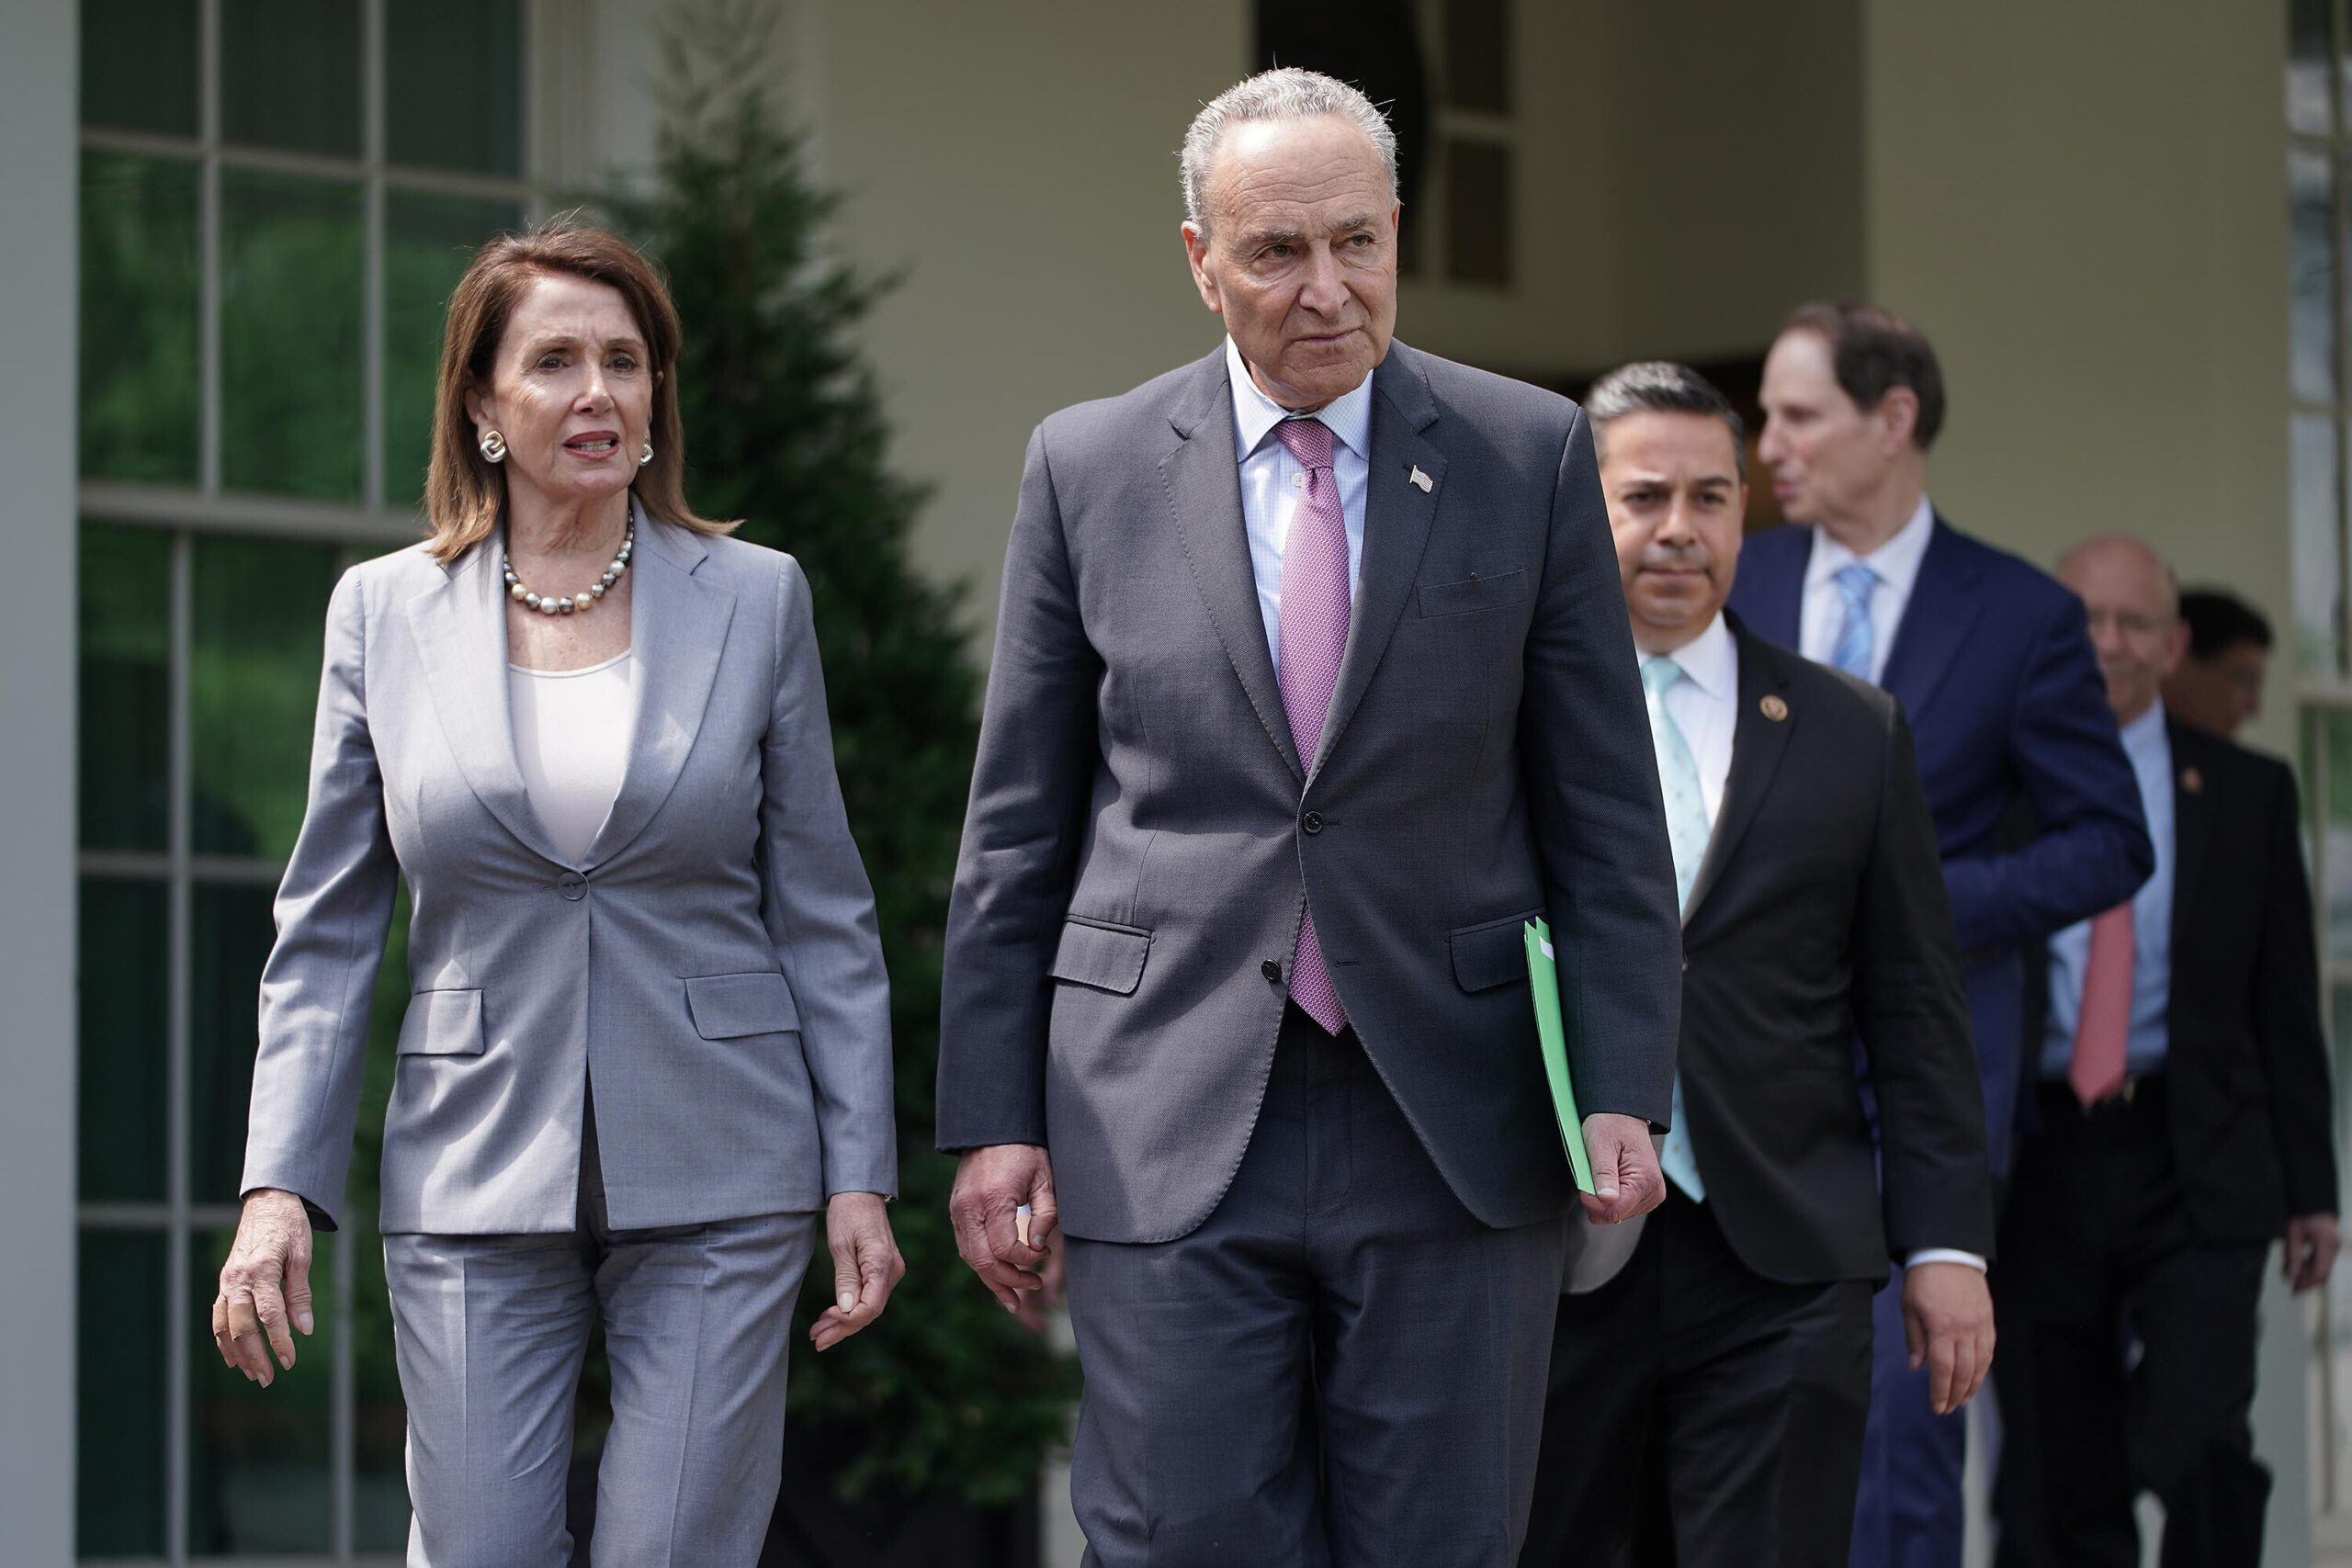 <i>Chip Somodevilla/Getty Images</i><br/>House Speaker Nancy Pelosi and Senate Majority Leader Chuck Schumer are seen here after meeting with other House and Senate Democrats.